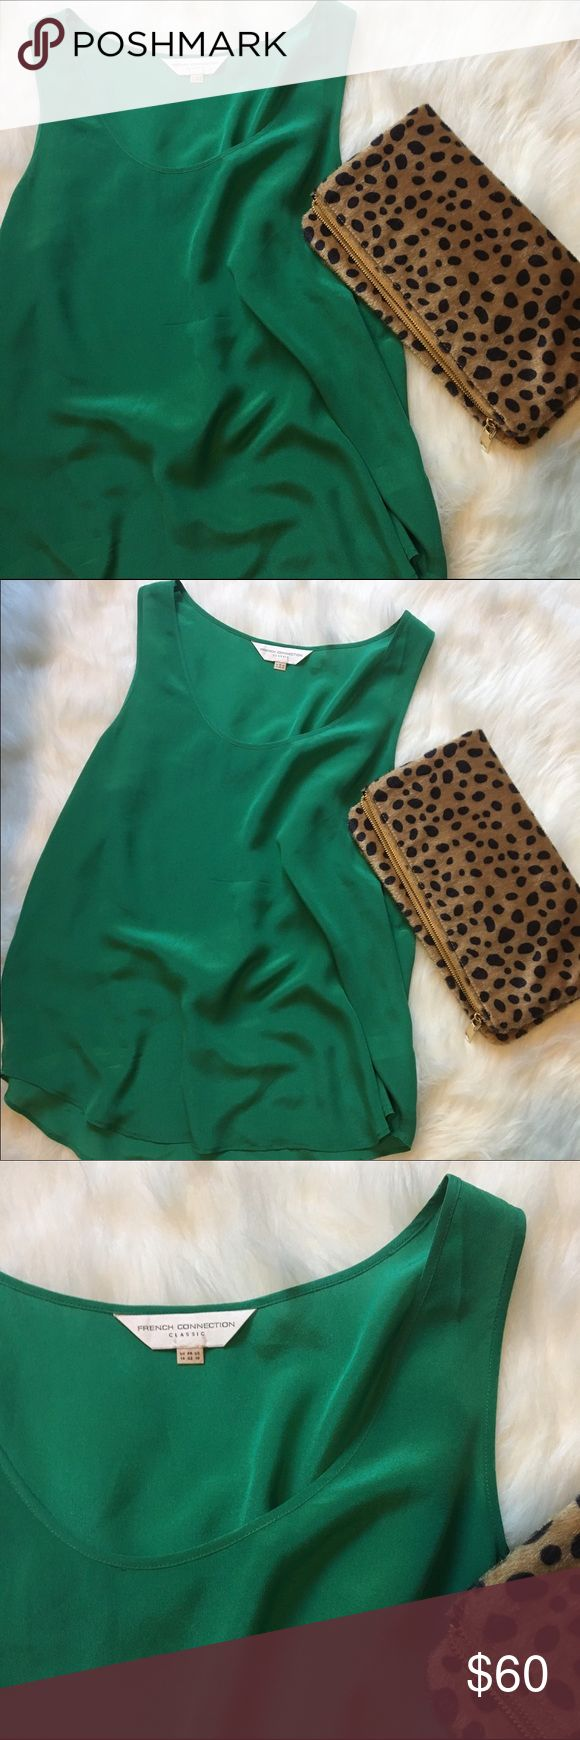 Emerald Silk Tank Top Such a great, bold tank to pair with anything you want!  Plus it's 100% silk and who doesn't love silk? French Connection Tops Tank Tops